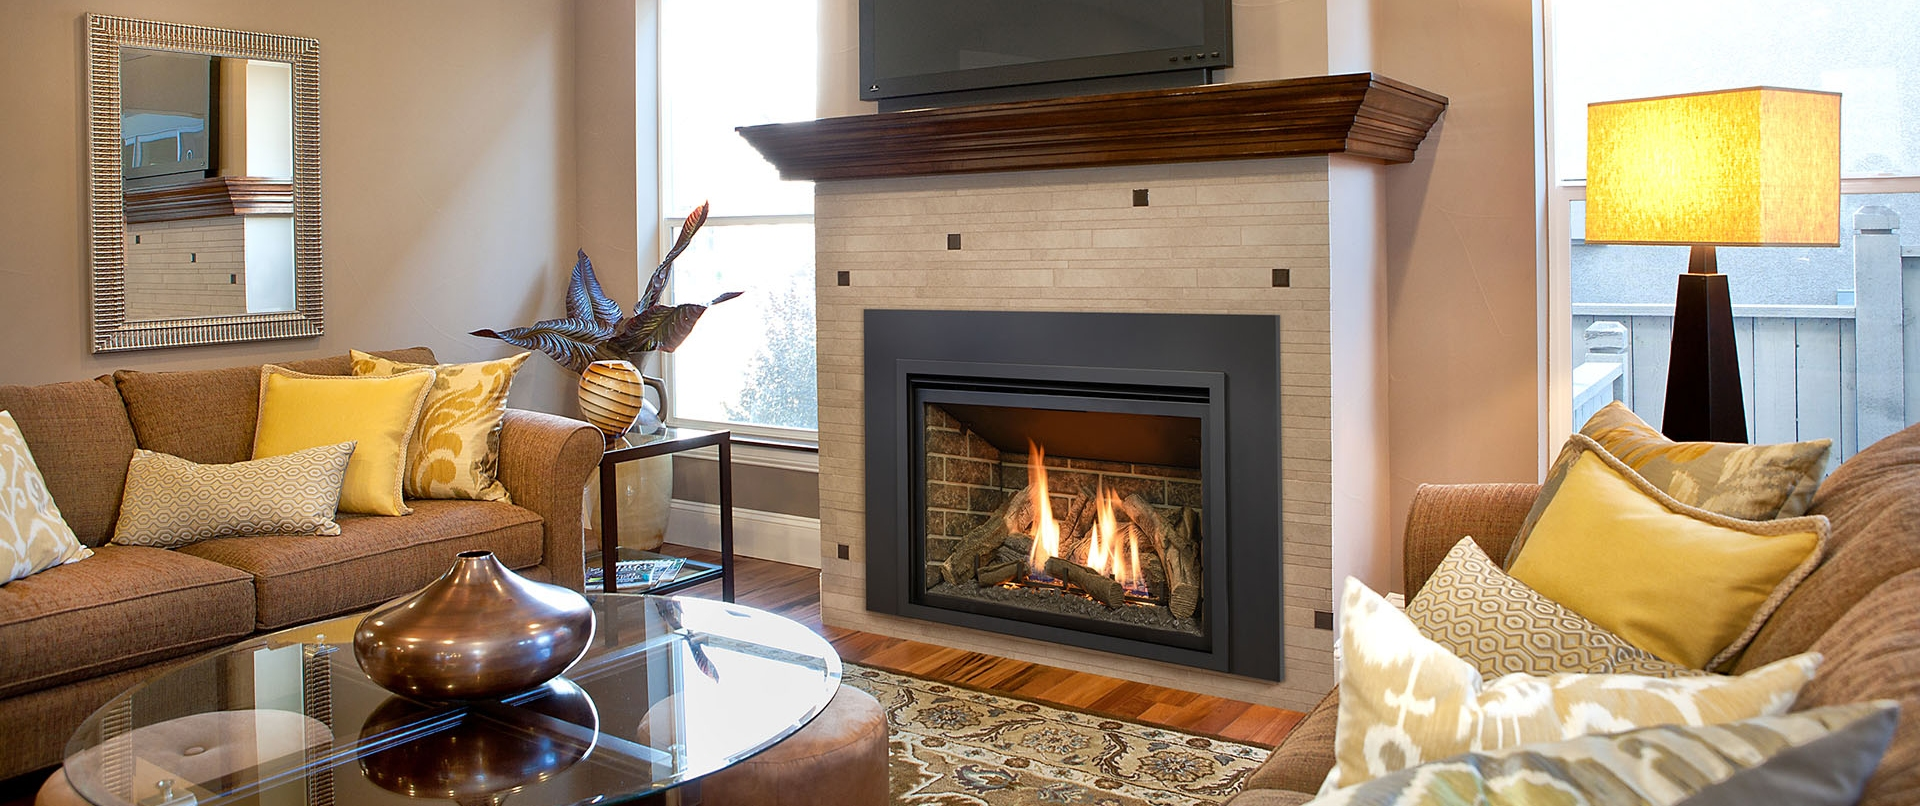 Convert Fireplace To Gas Burning Rochester Fireplace Gas Wood Inserts Fireplaces And Stoves